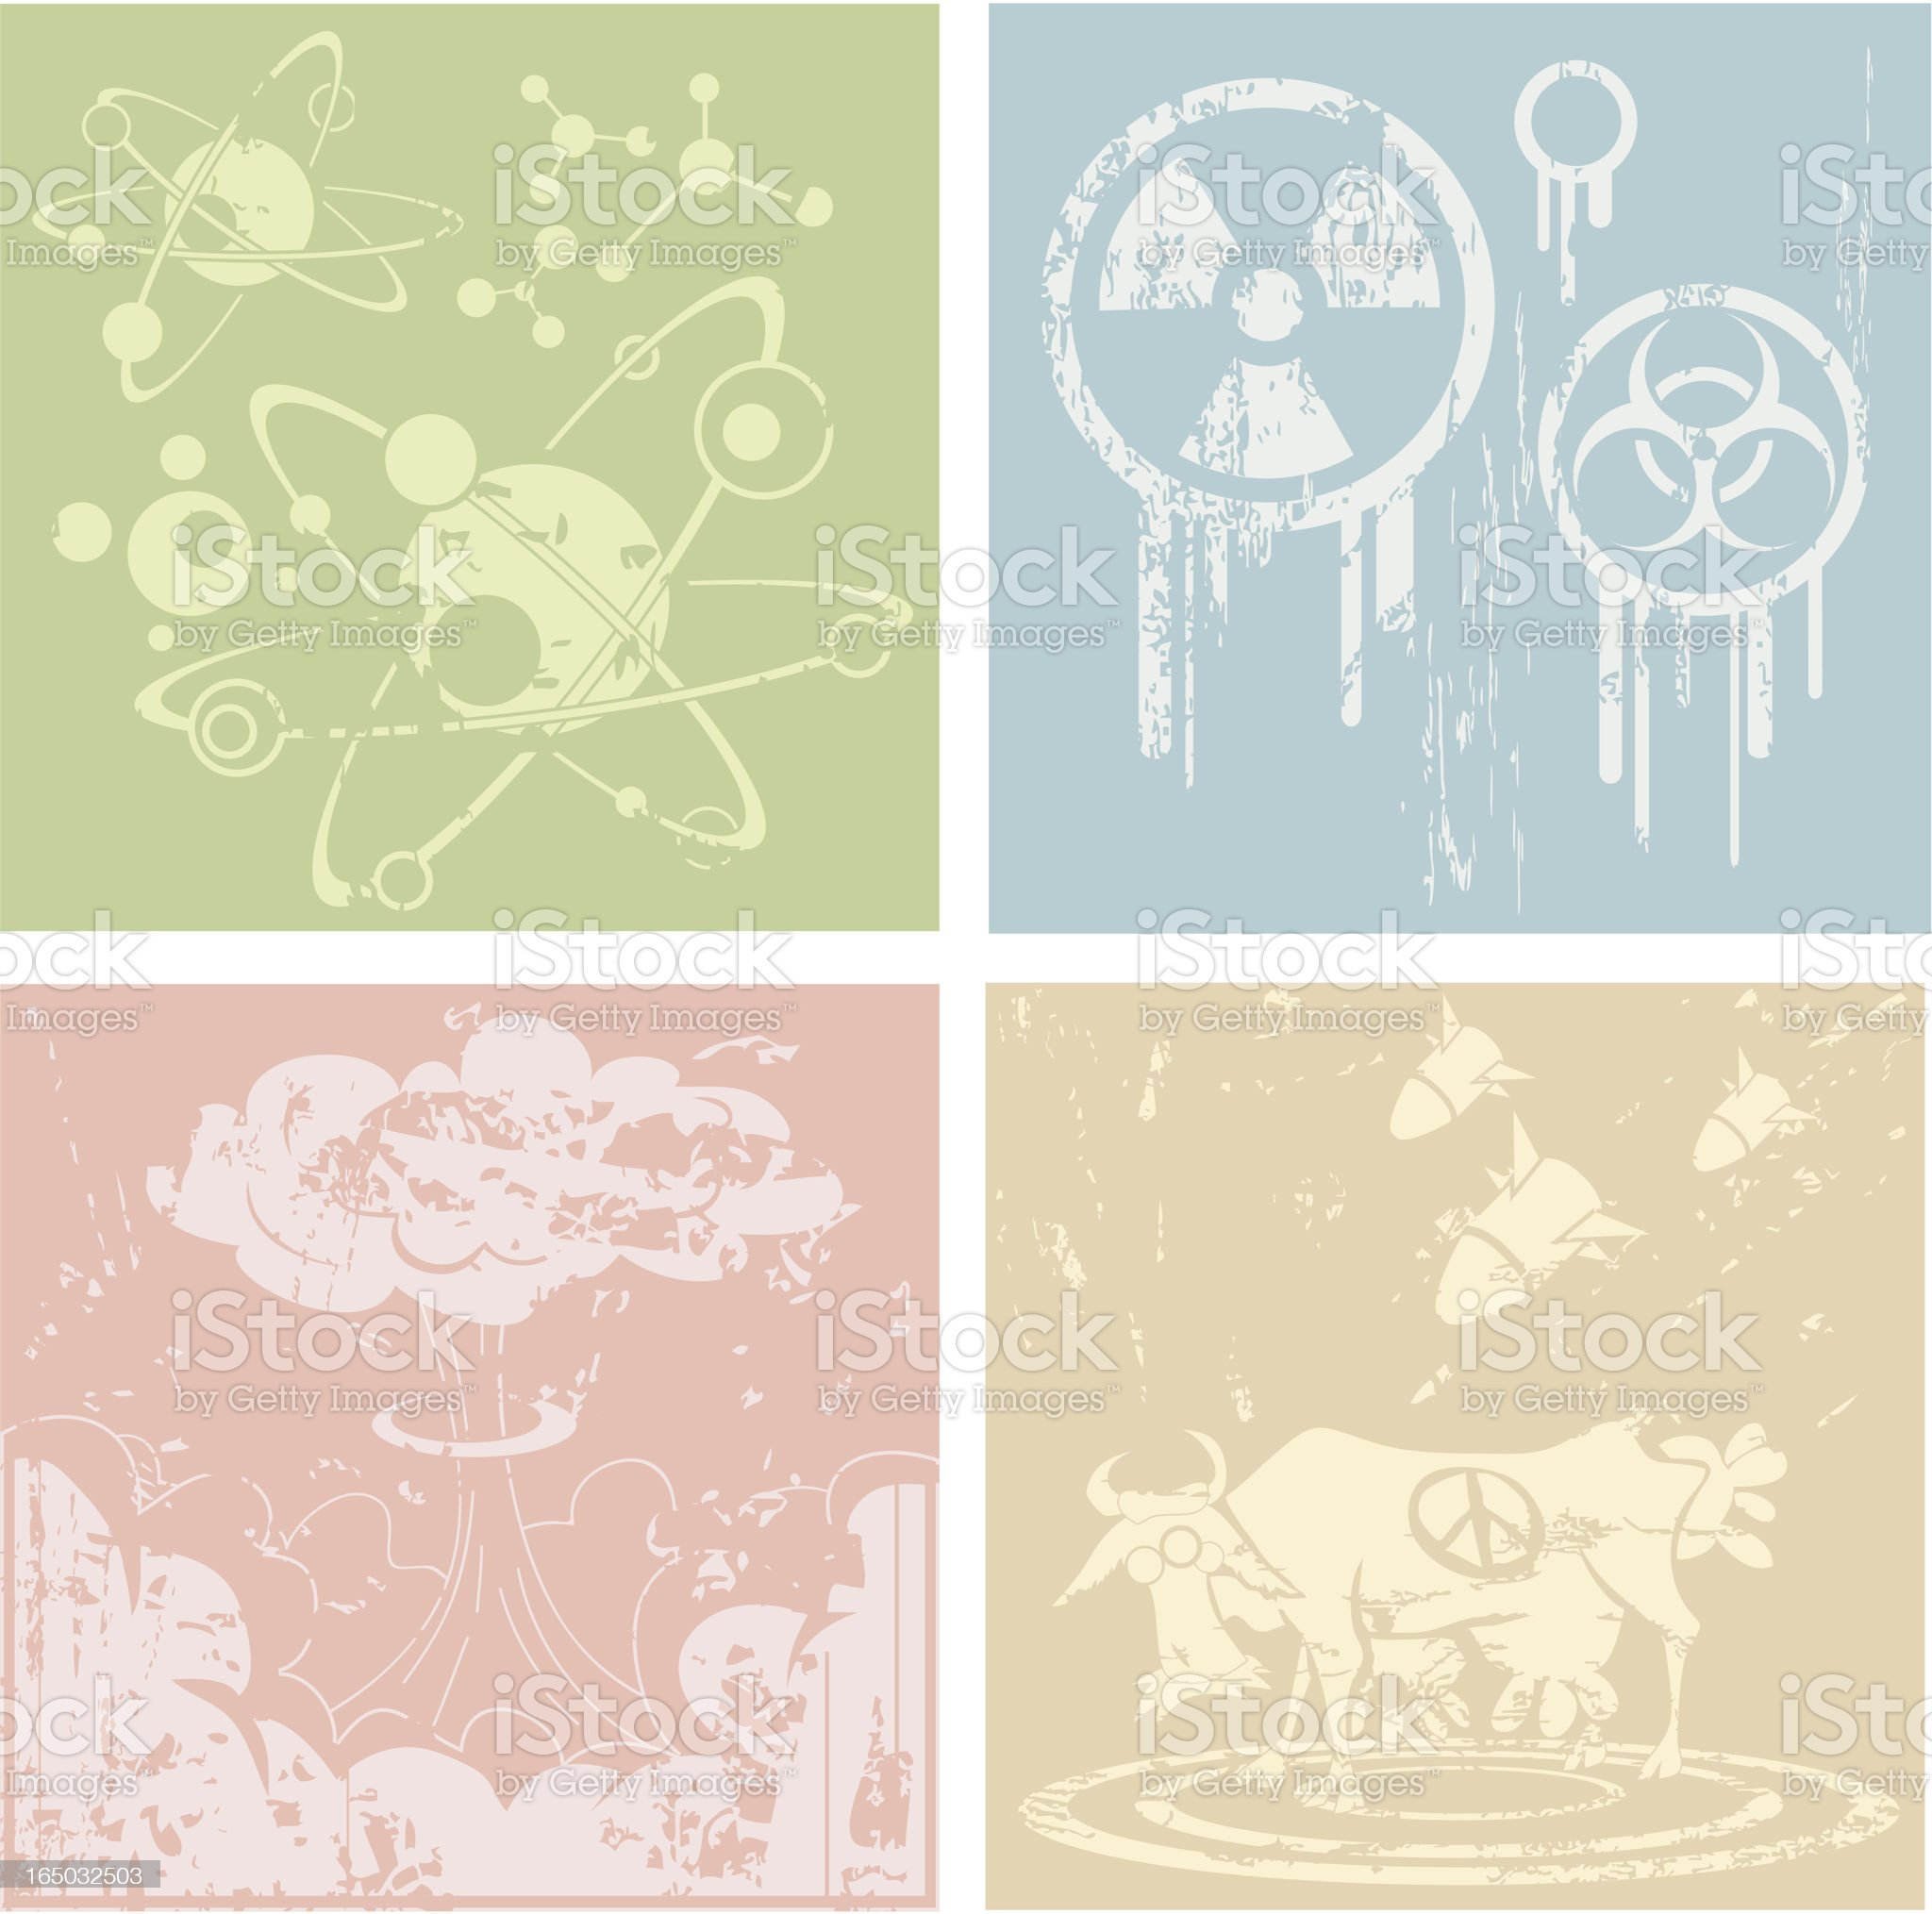 Atomic Backgrounds royalty-free stock vector art